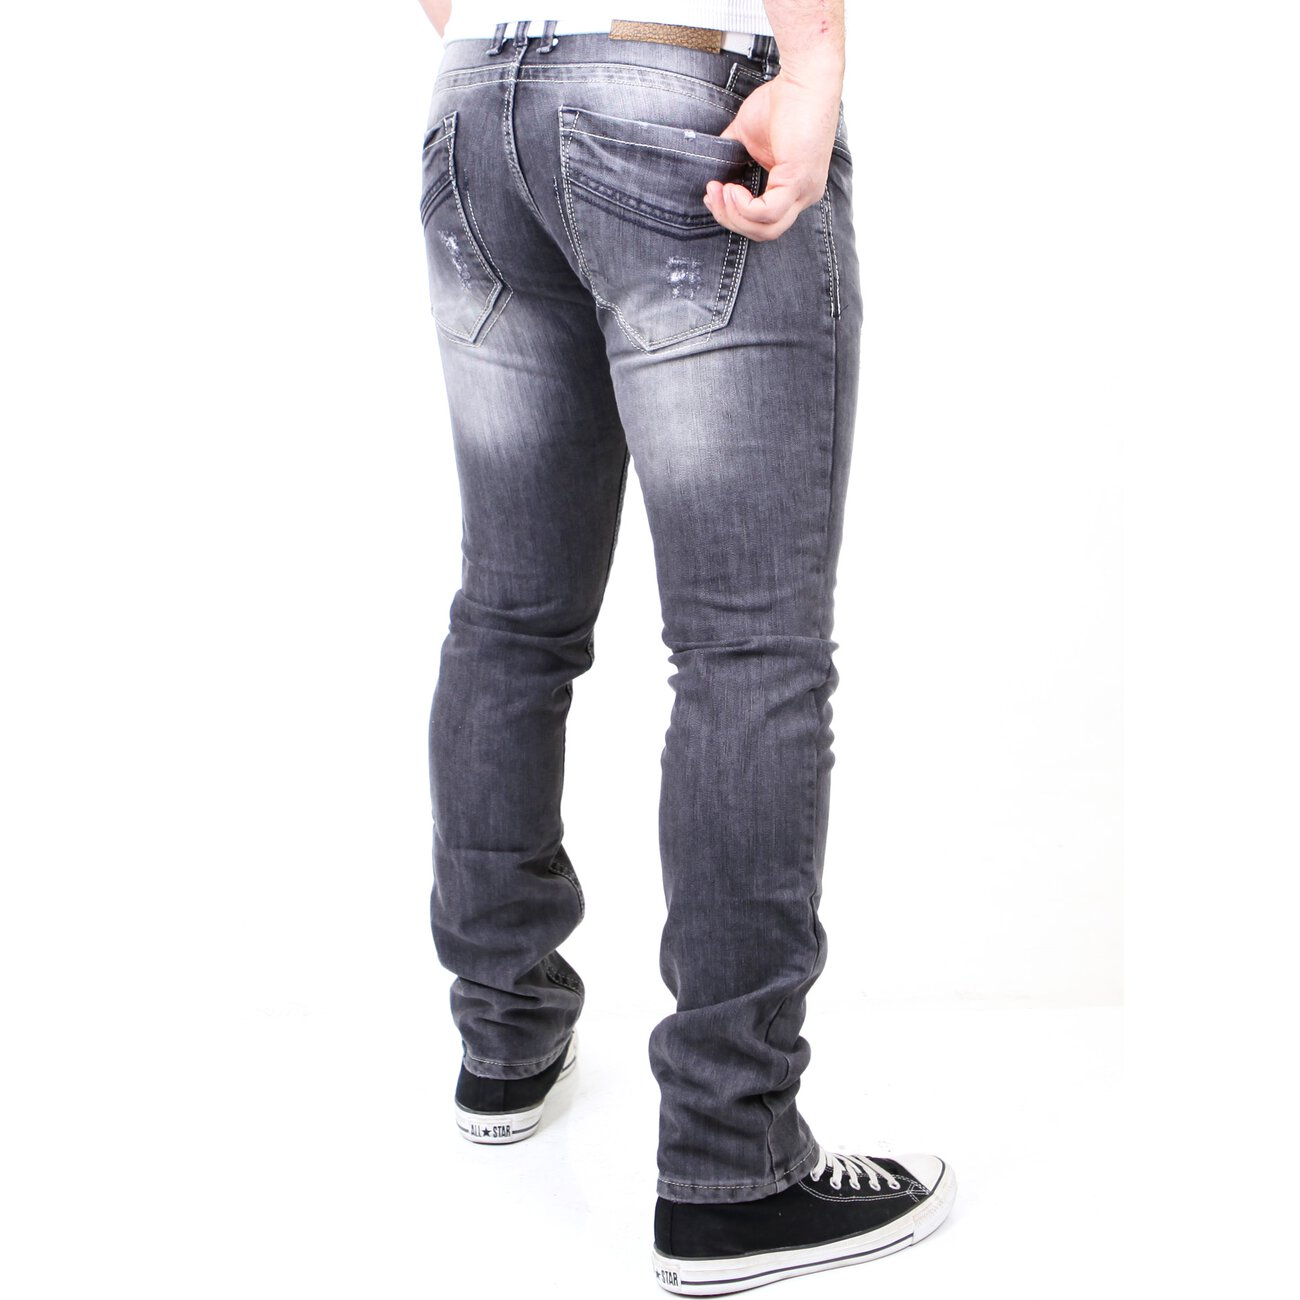 reslad herren jeans used style vintage look jeanshose rs 5895 grau w. Black Bedroom Furniture Sets. Home Design Ideas